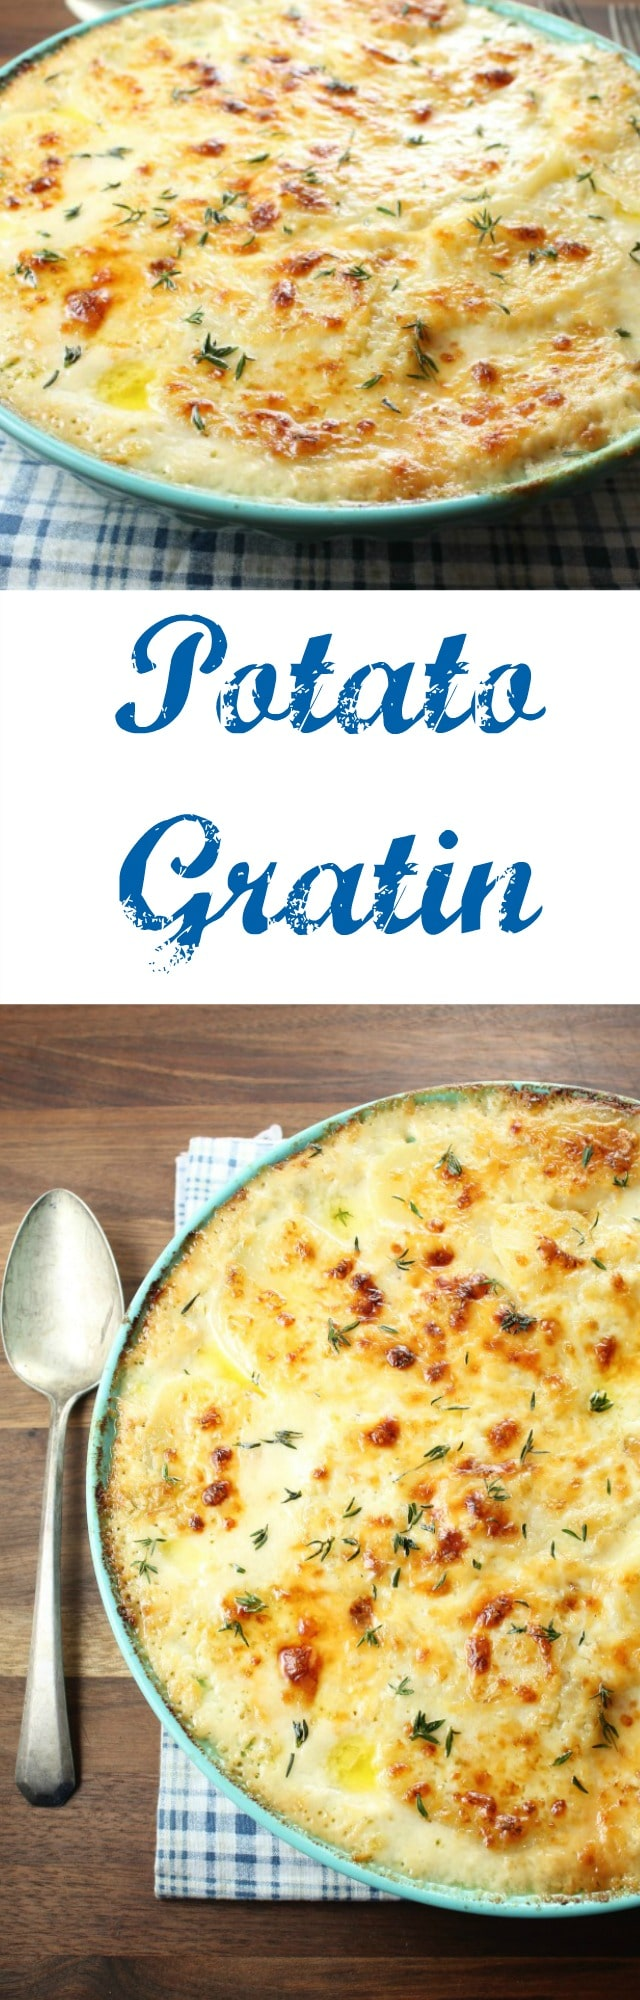 The perfect side dish for any meal! Potato Gratin Recipe found at Miss in the Kitchen